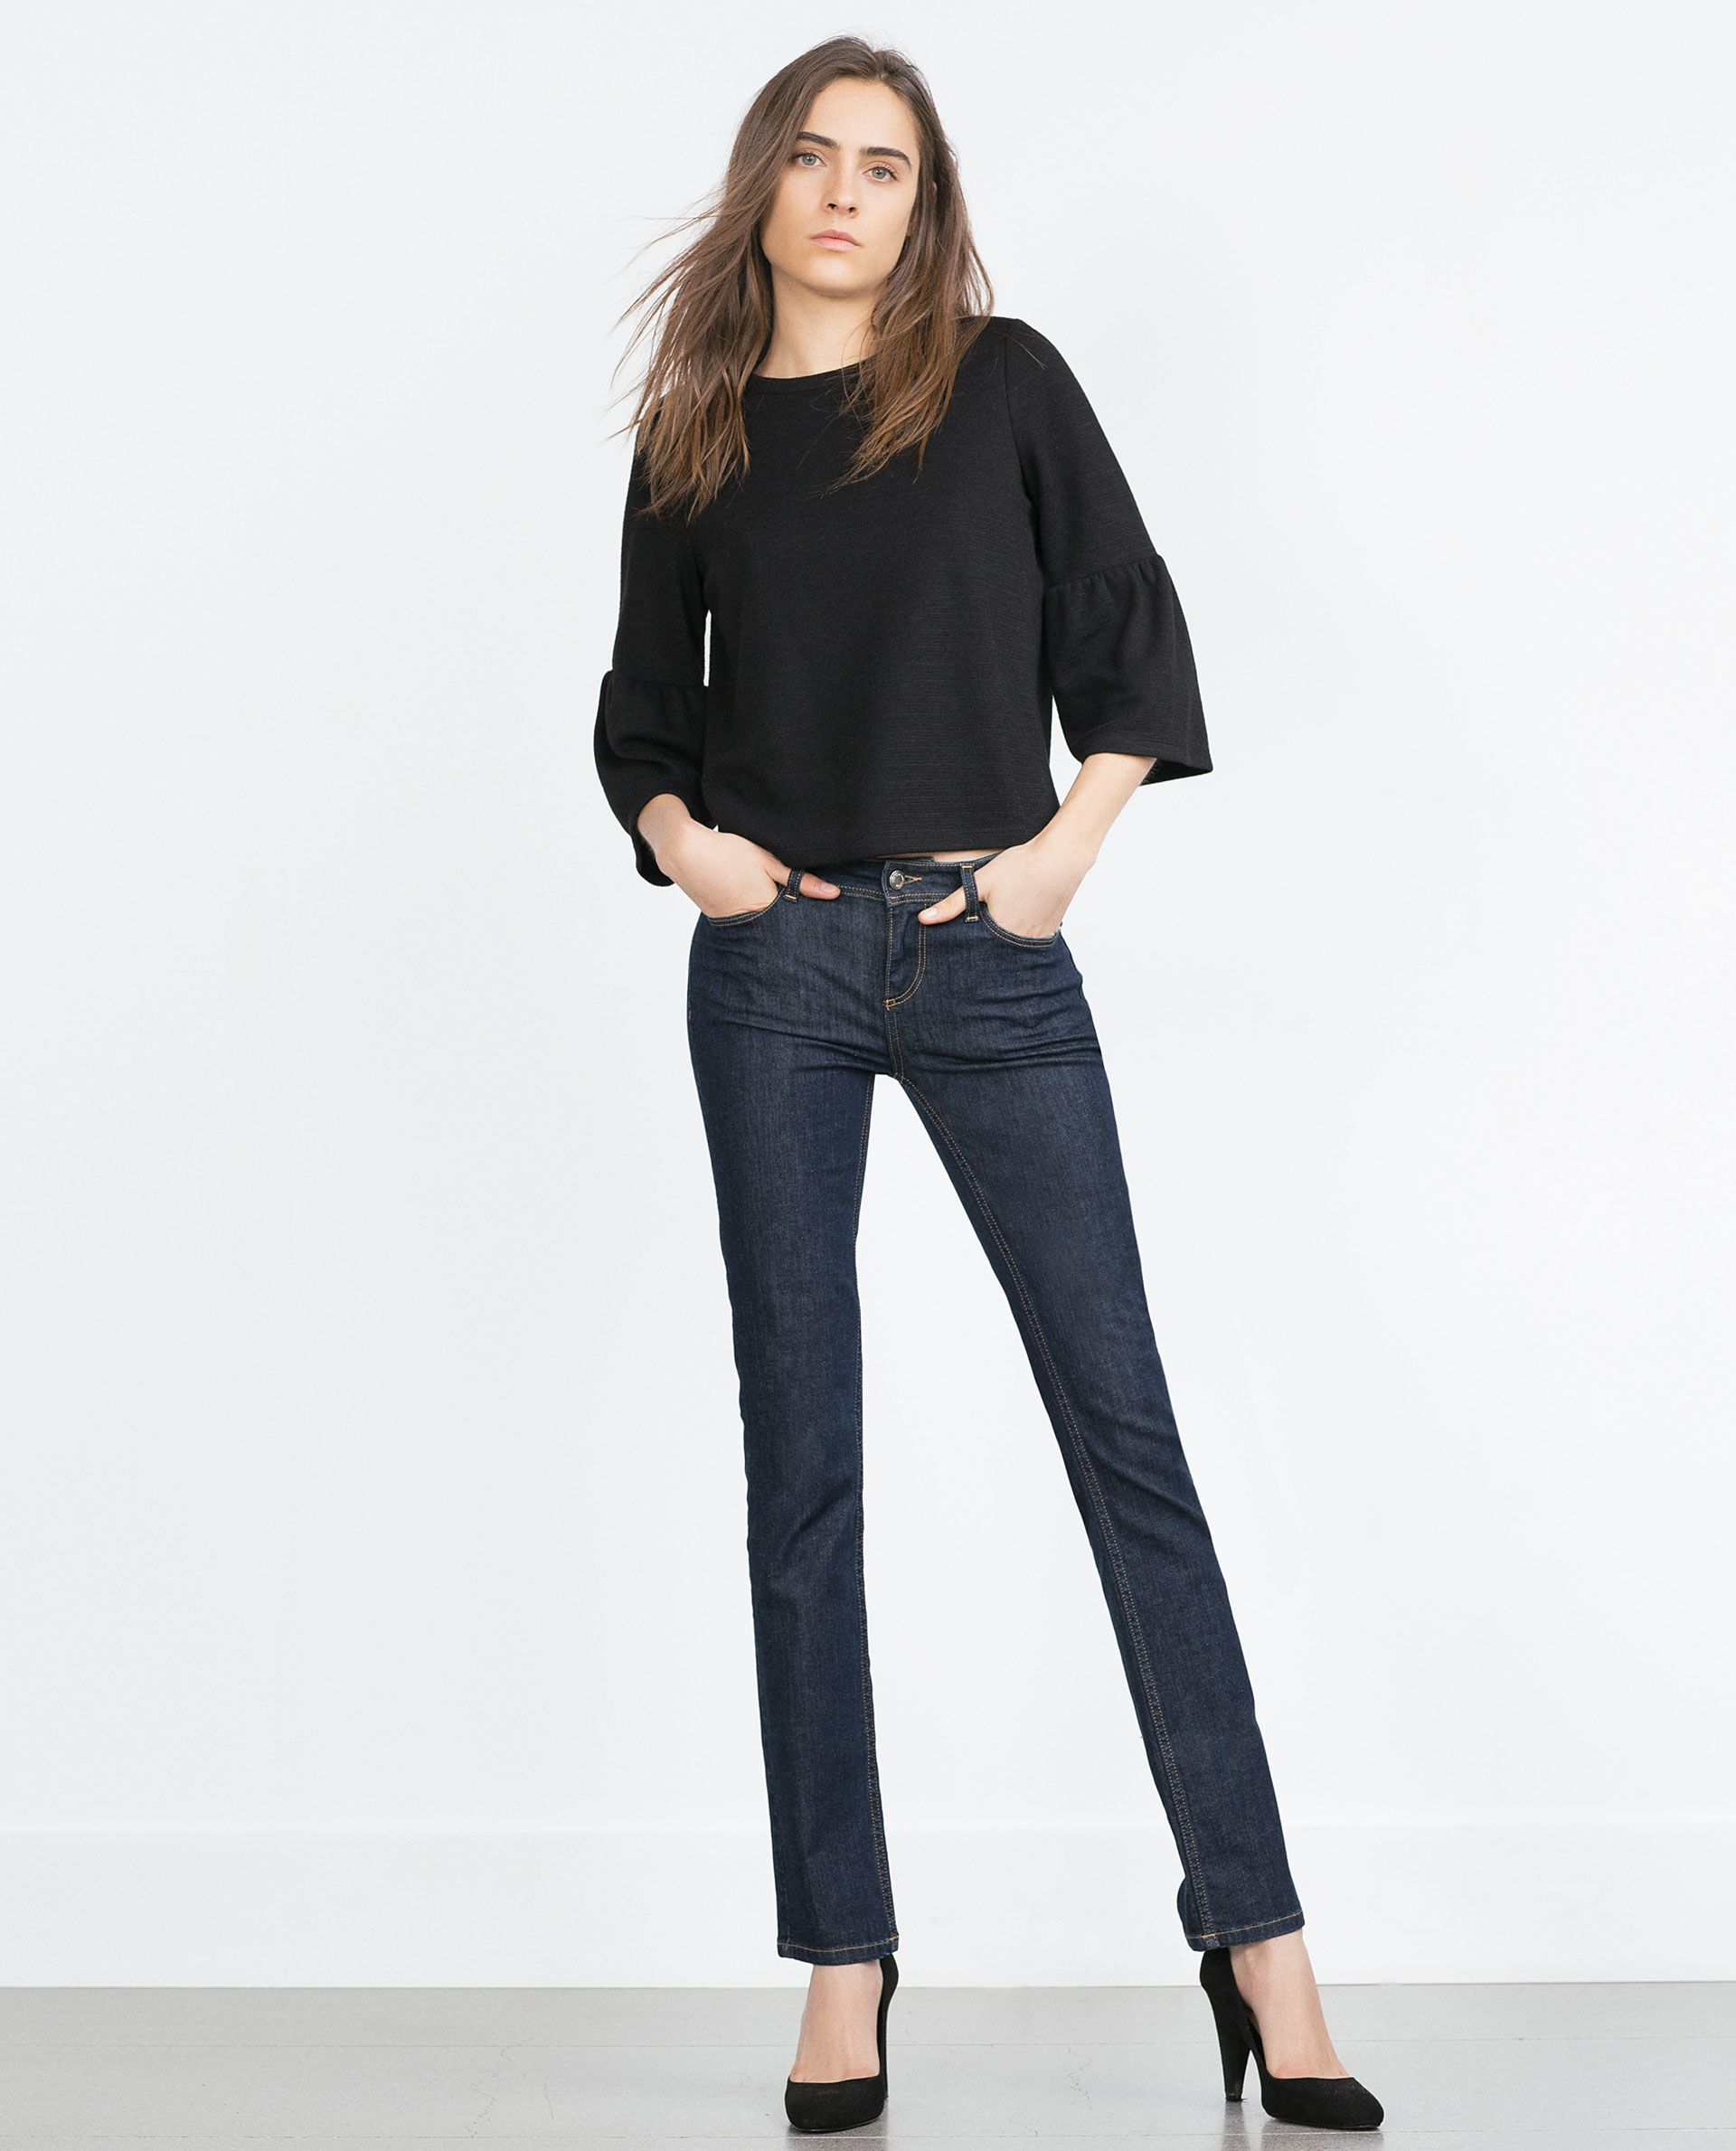 c1f3cebc39672f zara black bell sleeve top | Tops | Bell sleeves, Black bell sleeve ...